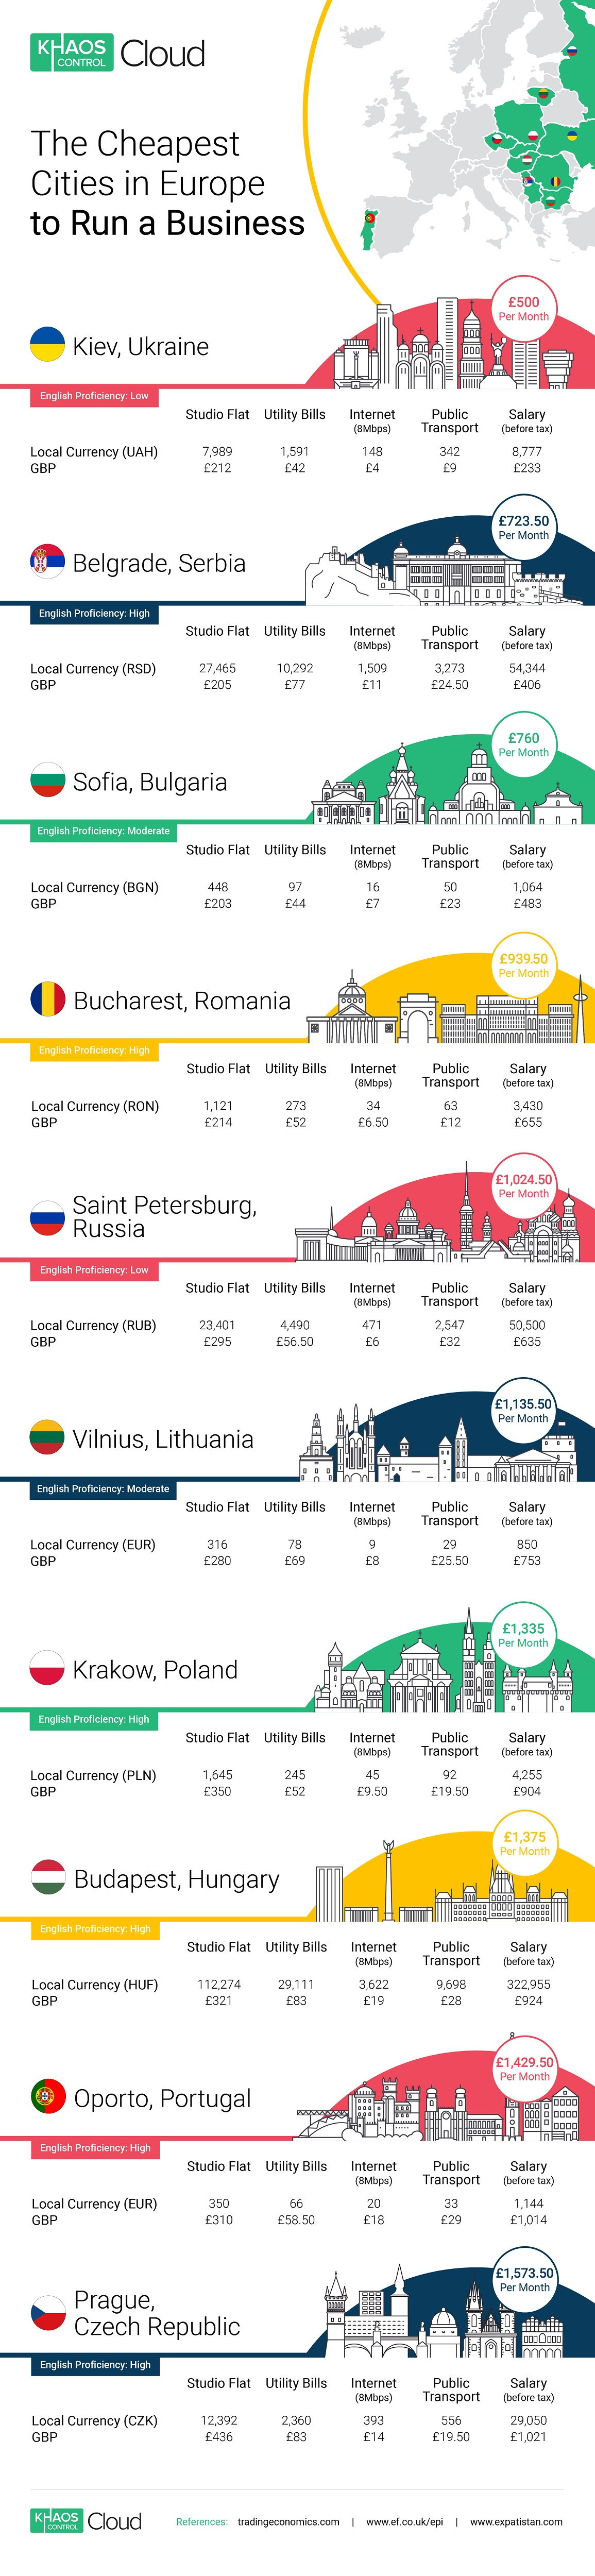 Cheapest European cities to run a business from infographic